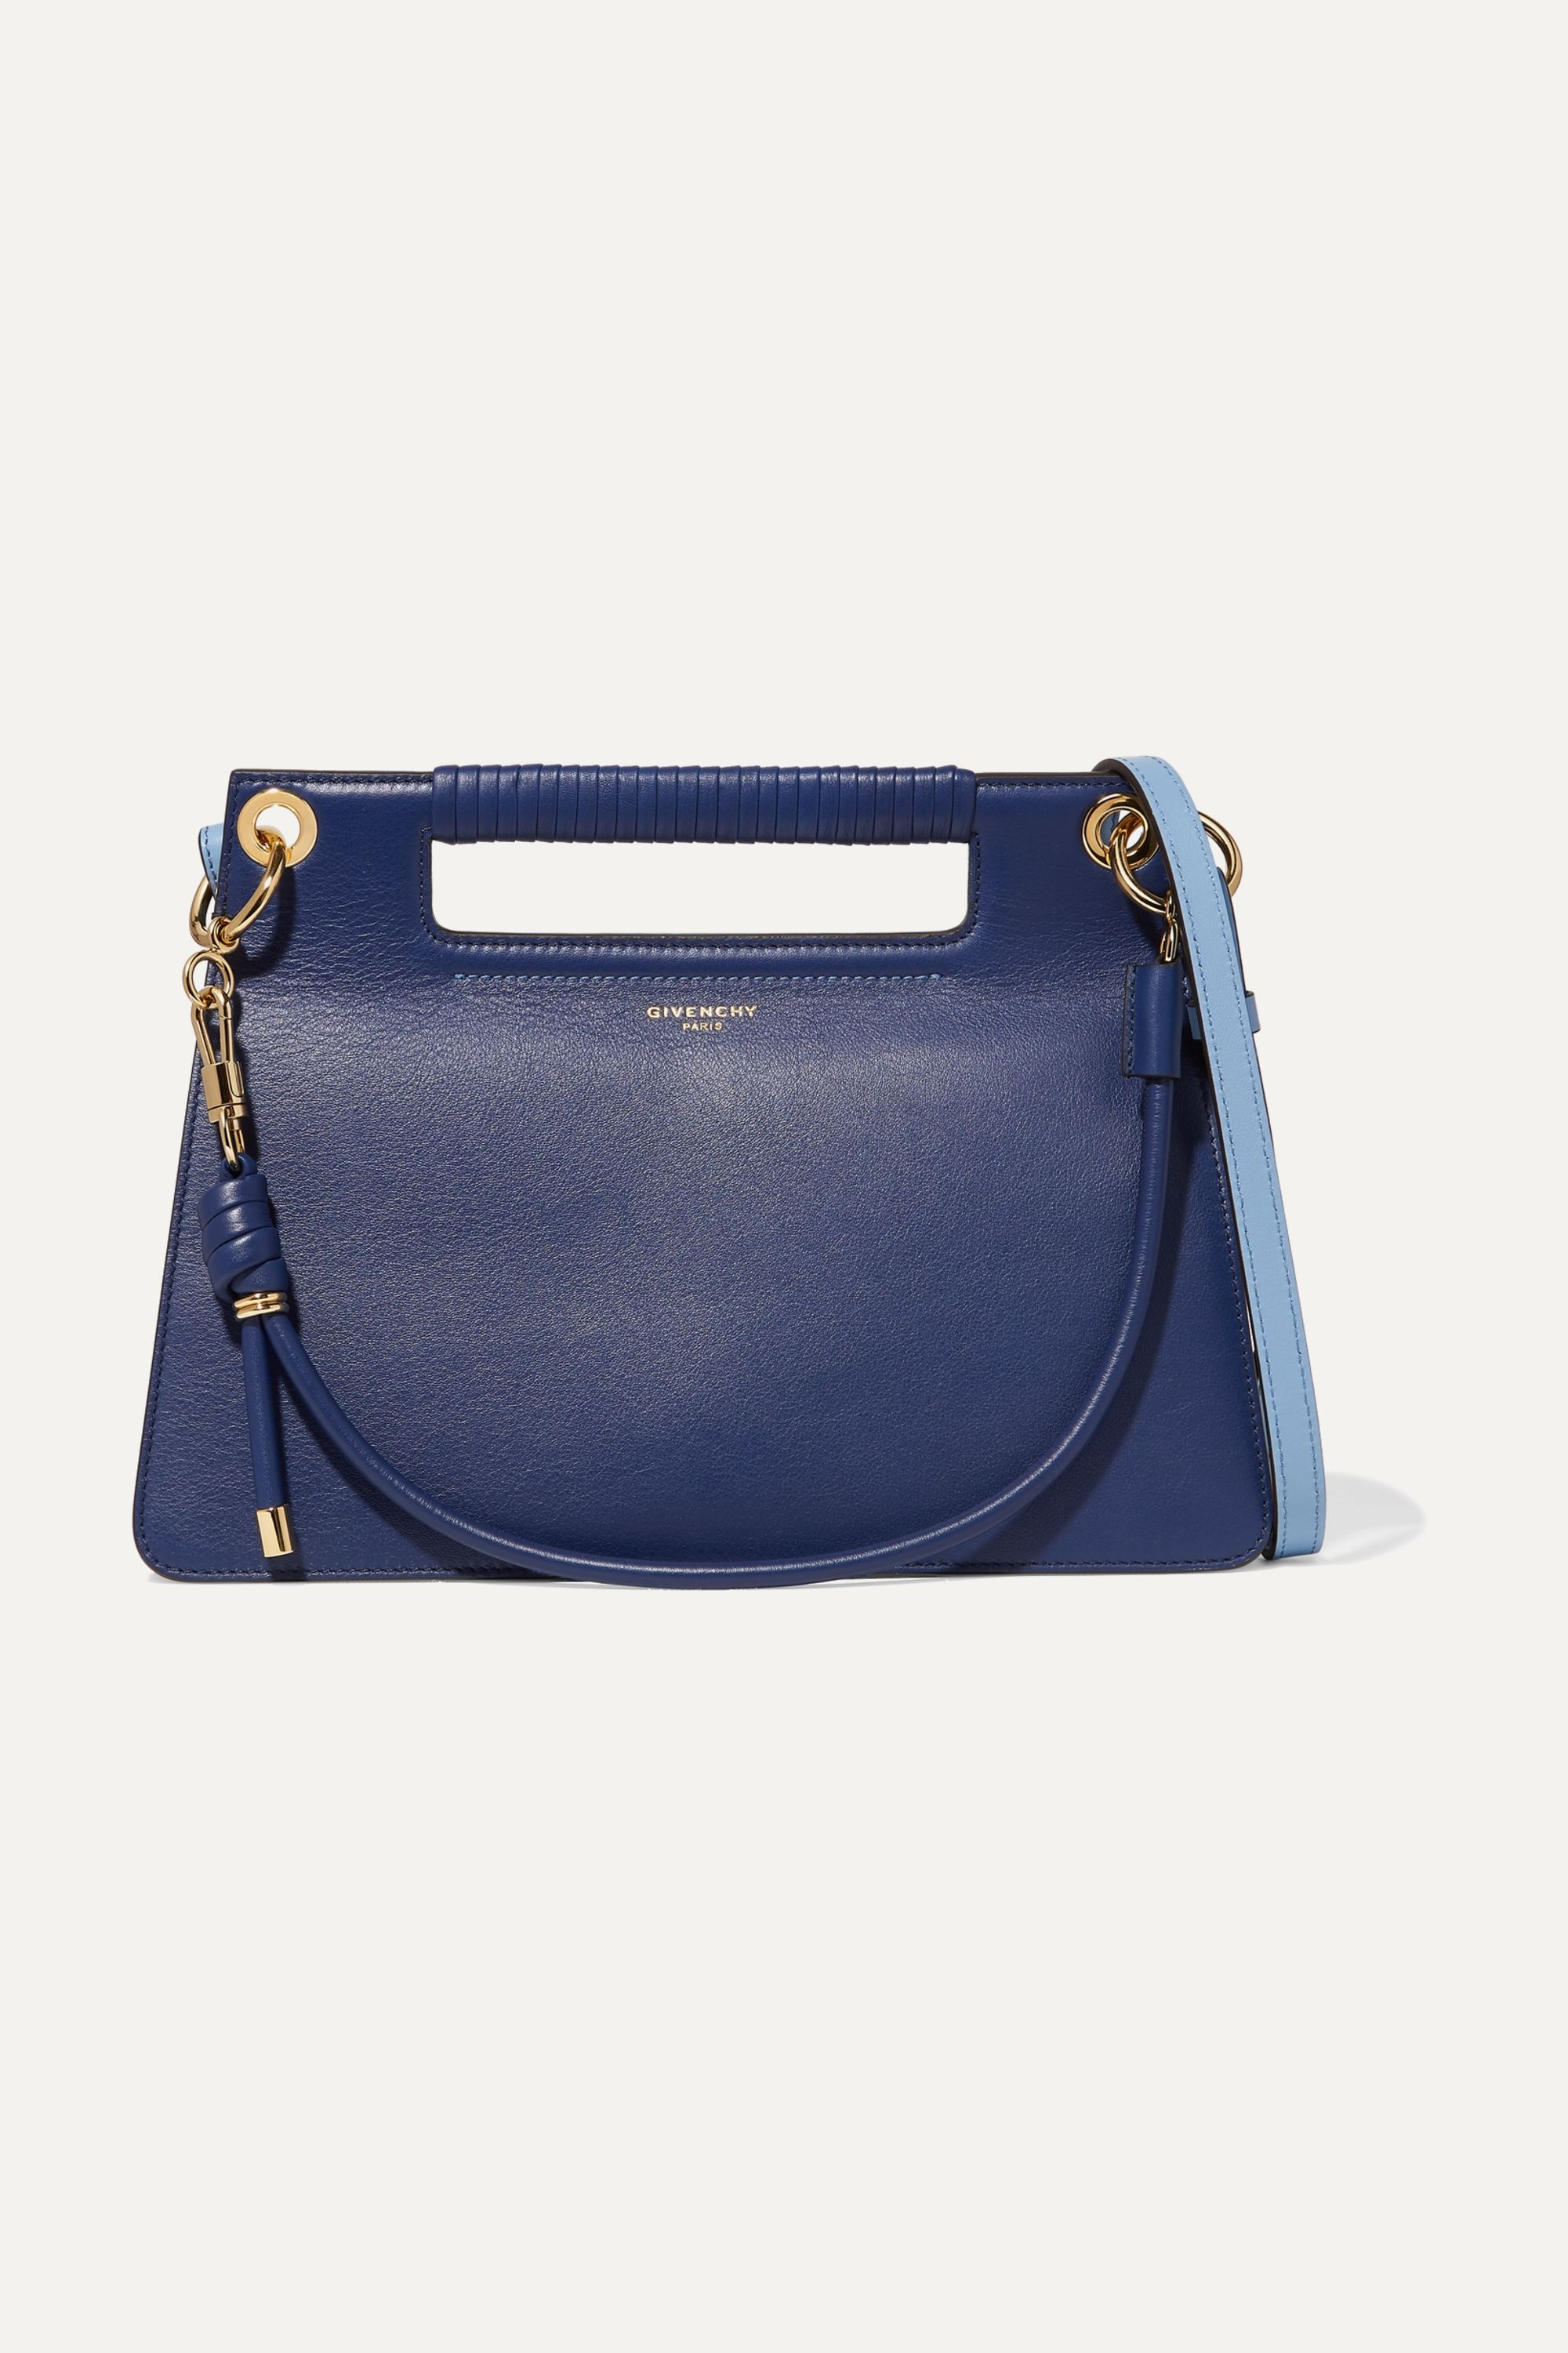 Givenchy Whip medium two-tone leather shoulder bag